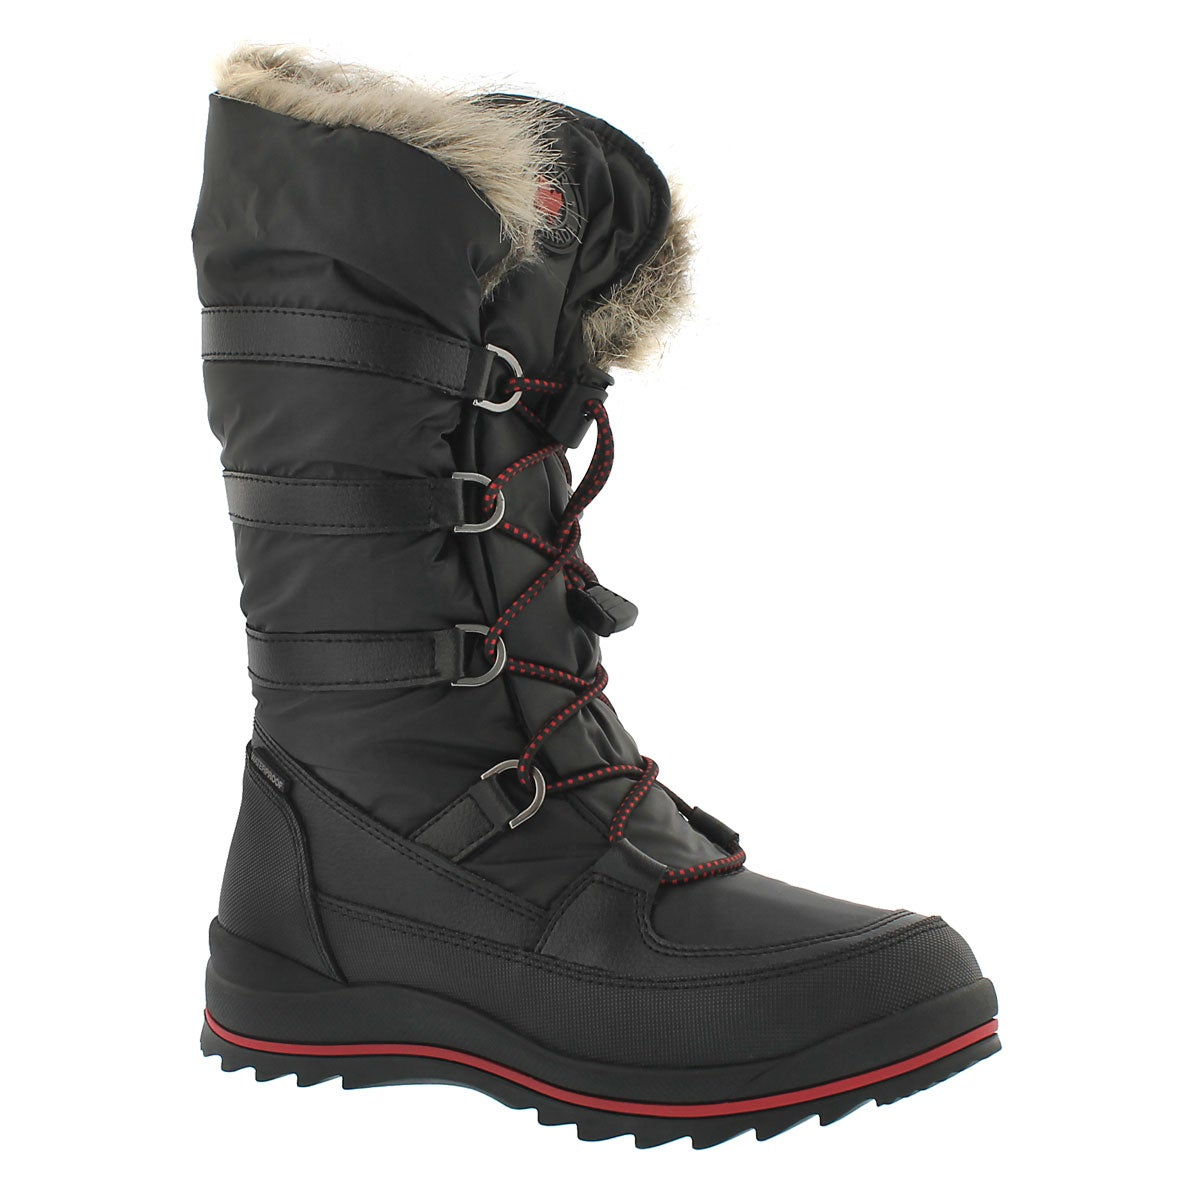 Grls Coco black nylon wtpf winter boot